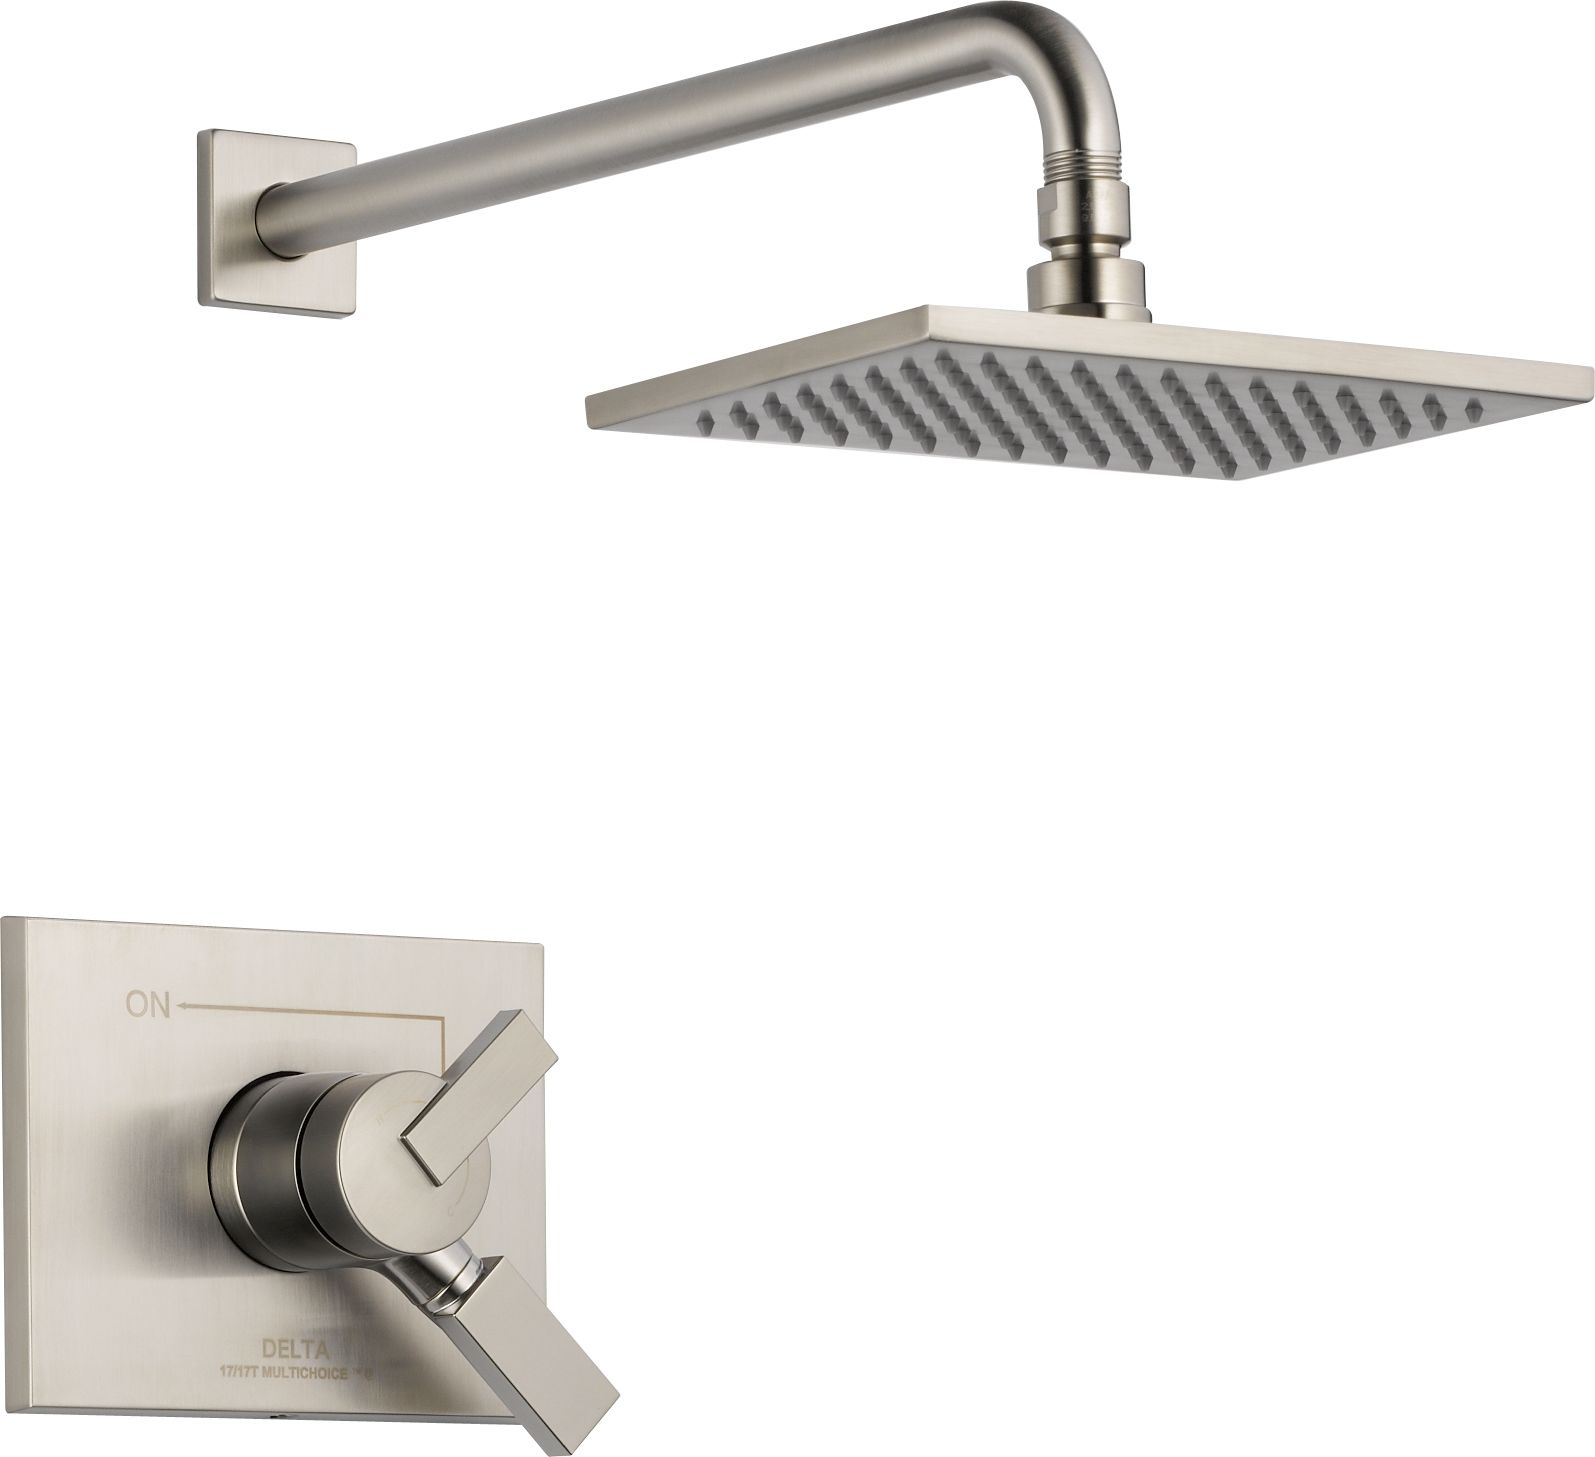 Delta T17253 Ss Brilliance Stainless Vero Monitor 17 Series Dual Shower Faucet Repair Parts Besides Diverter Valve Diagram Function Pressure Balanced Trim Package With Touch Clean Head And Integrated Volume Control Less Rough In